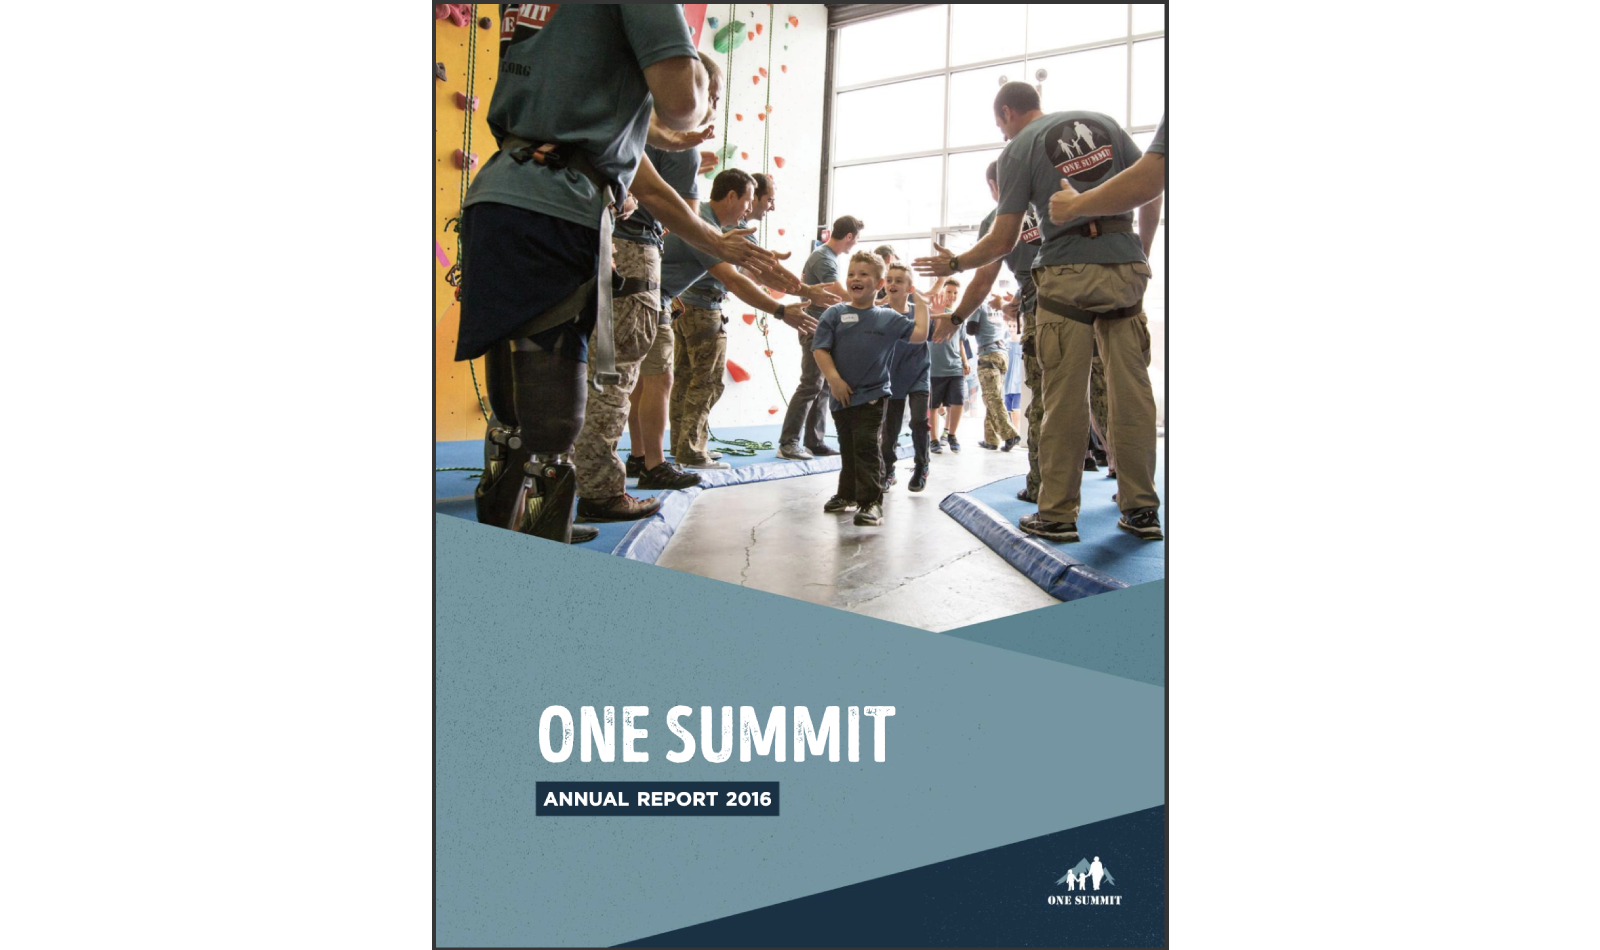 OS Annual Report Cover